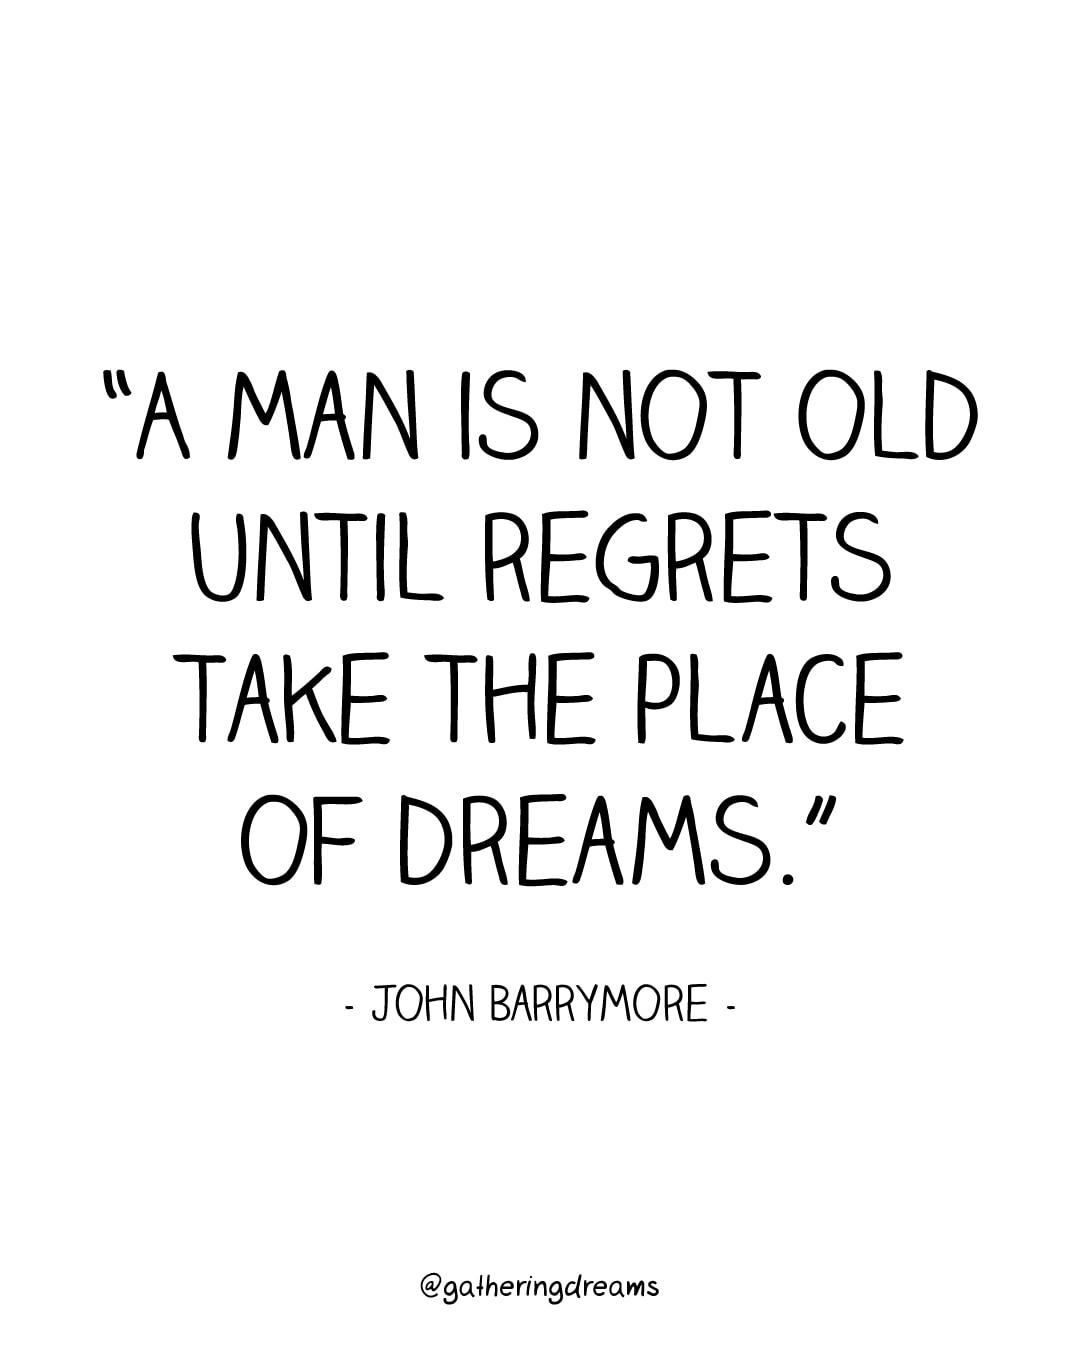 """A man is not old until regrets take the place of dreams."" John Barrymore - The best dream quotes, inspirational quotes and motivational quotes of all times #inspiration #inspirationalquotes #motivationalquotes #dreams"